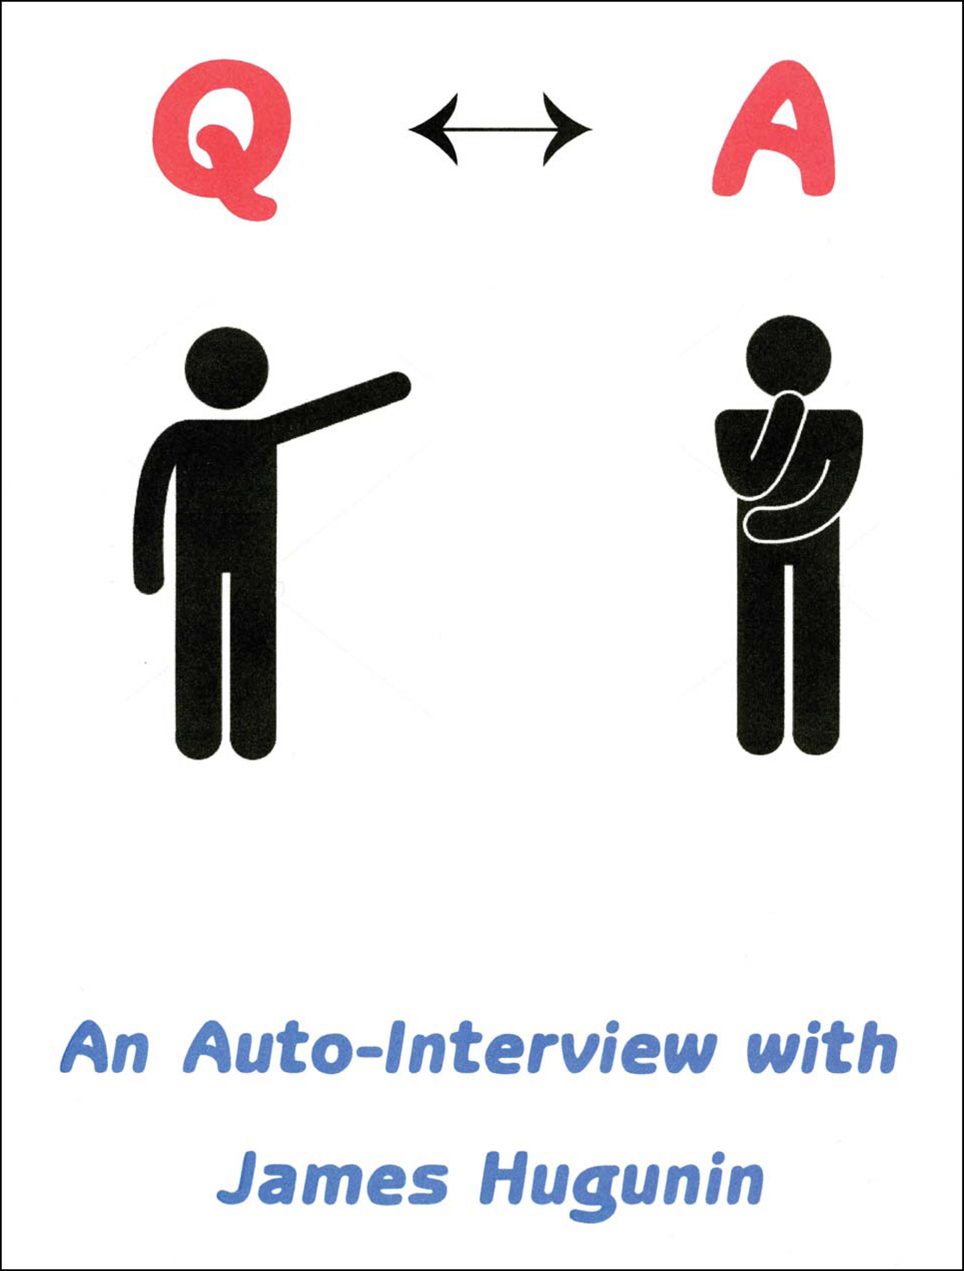 Q↔A: An Auto-Interview